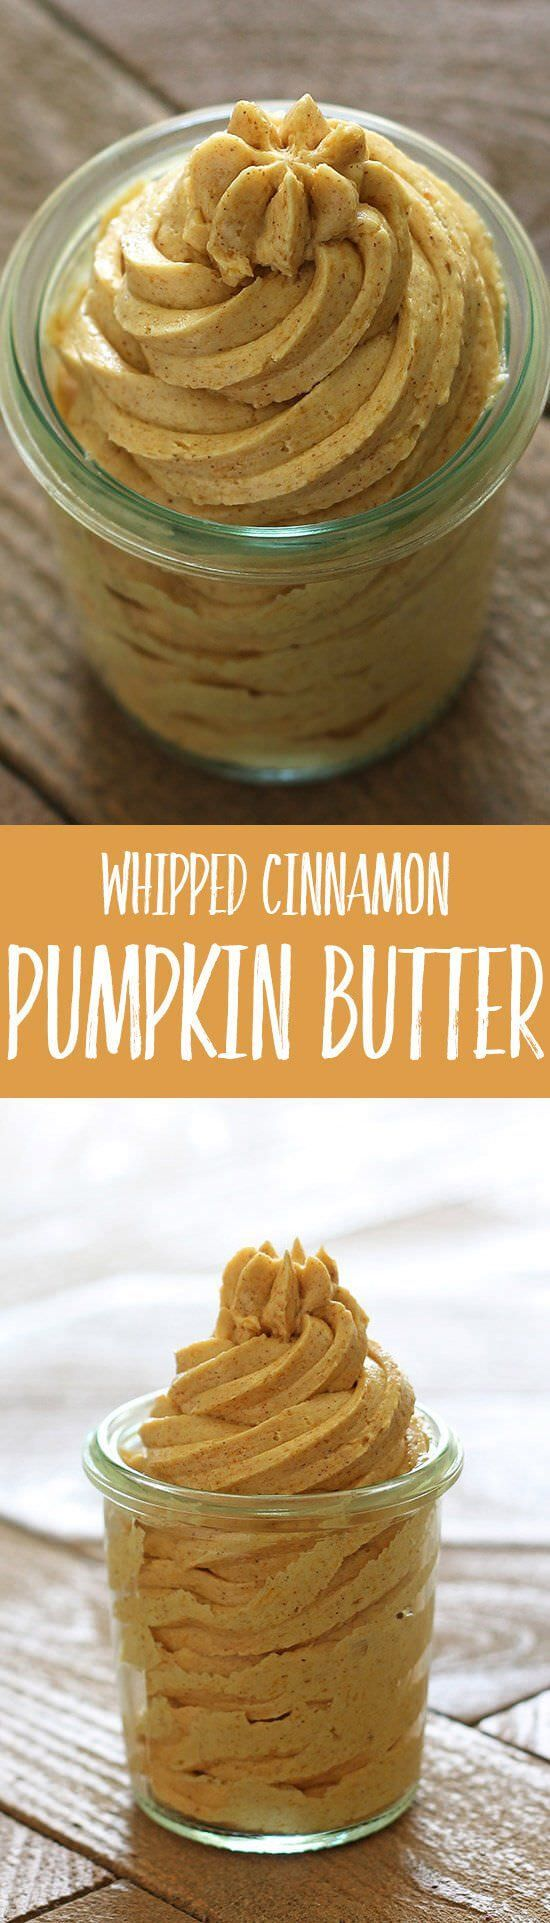 Whipped Cinnamon Pumpkin Butter is bursting with fall flavors and perfect on bread, muffins, pancakes, waffles, and just about anything else. Make it ahead.